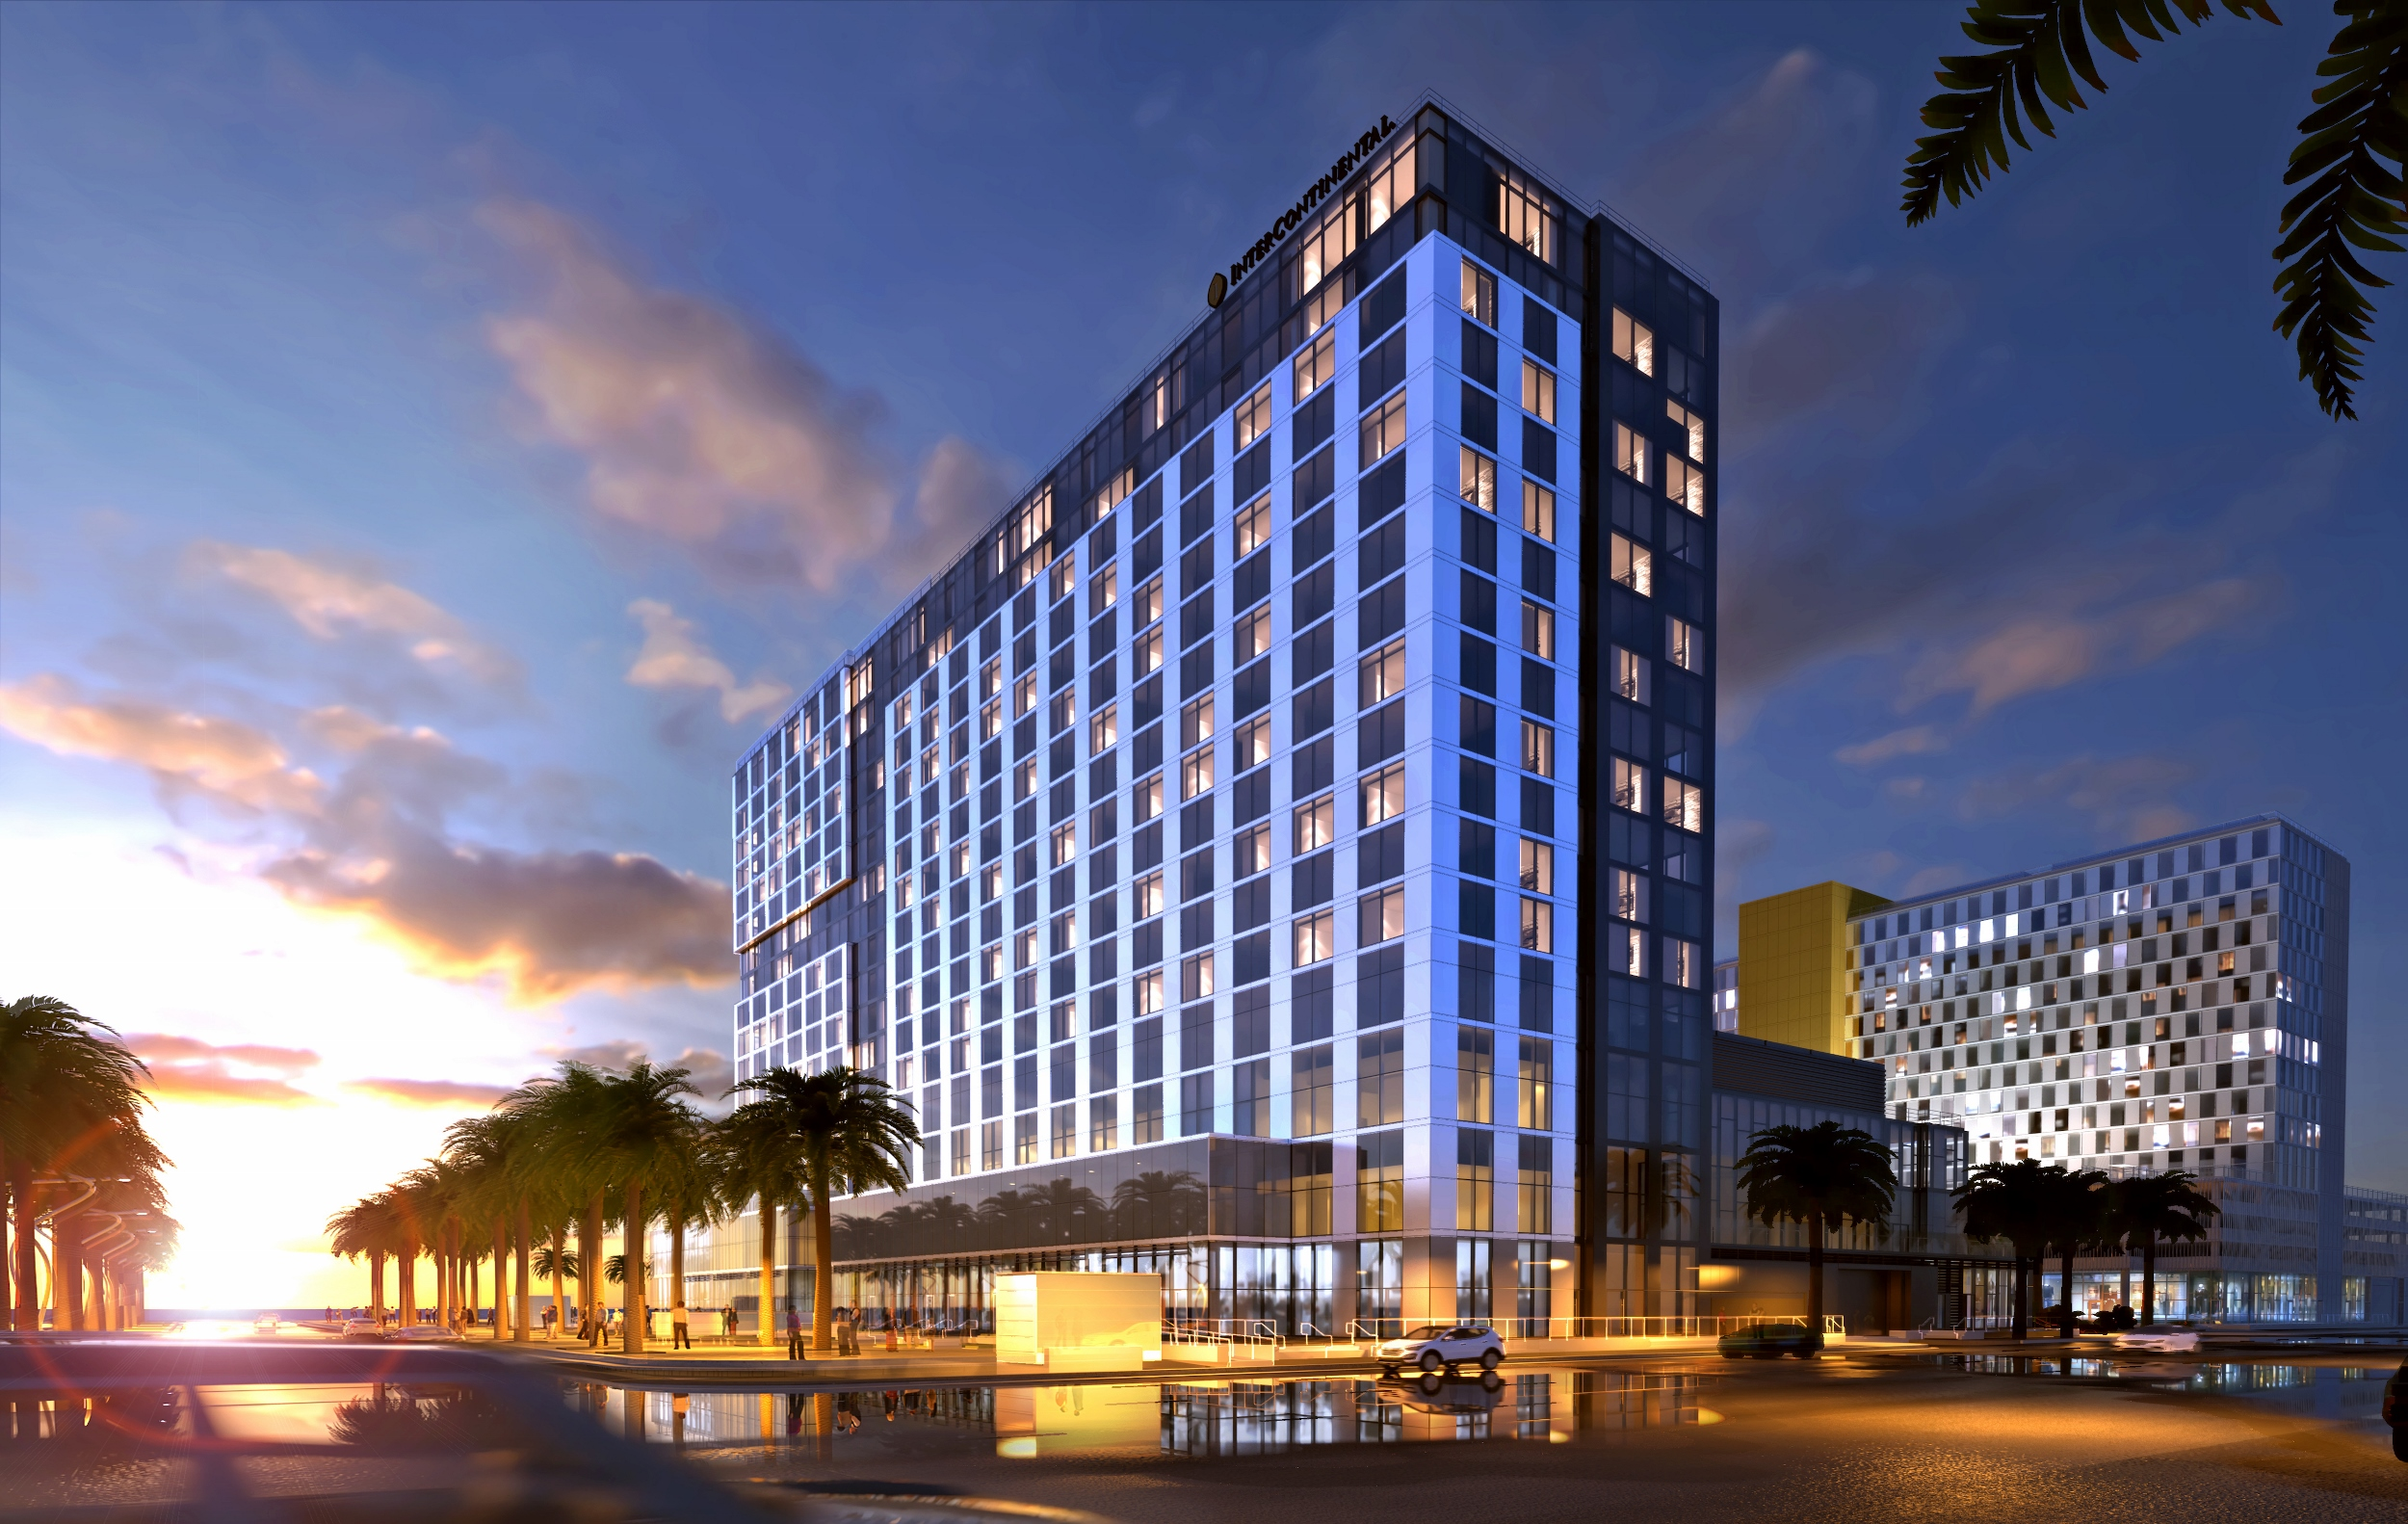 Ociated Luxury Hotels International Alhi Expands West Coast U S Options With Addition Of Two In California